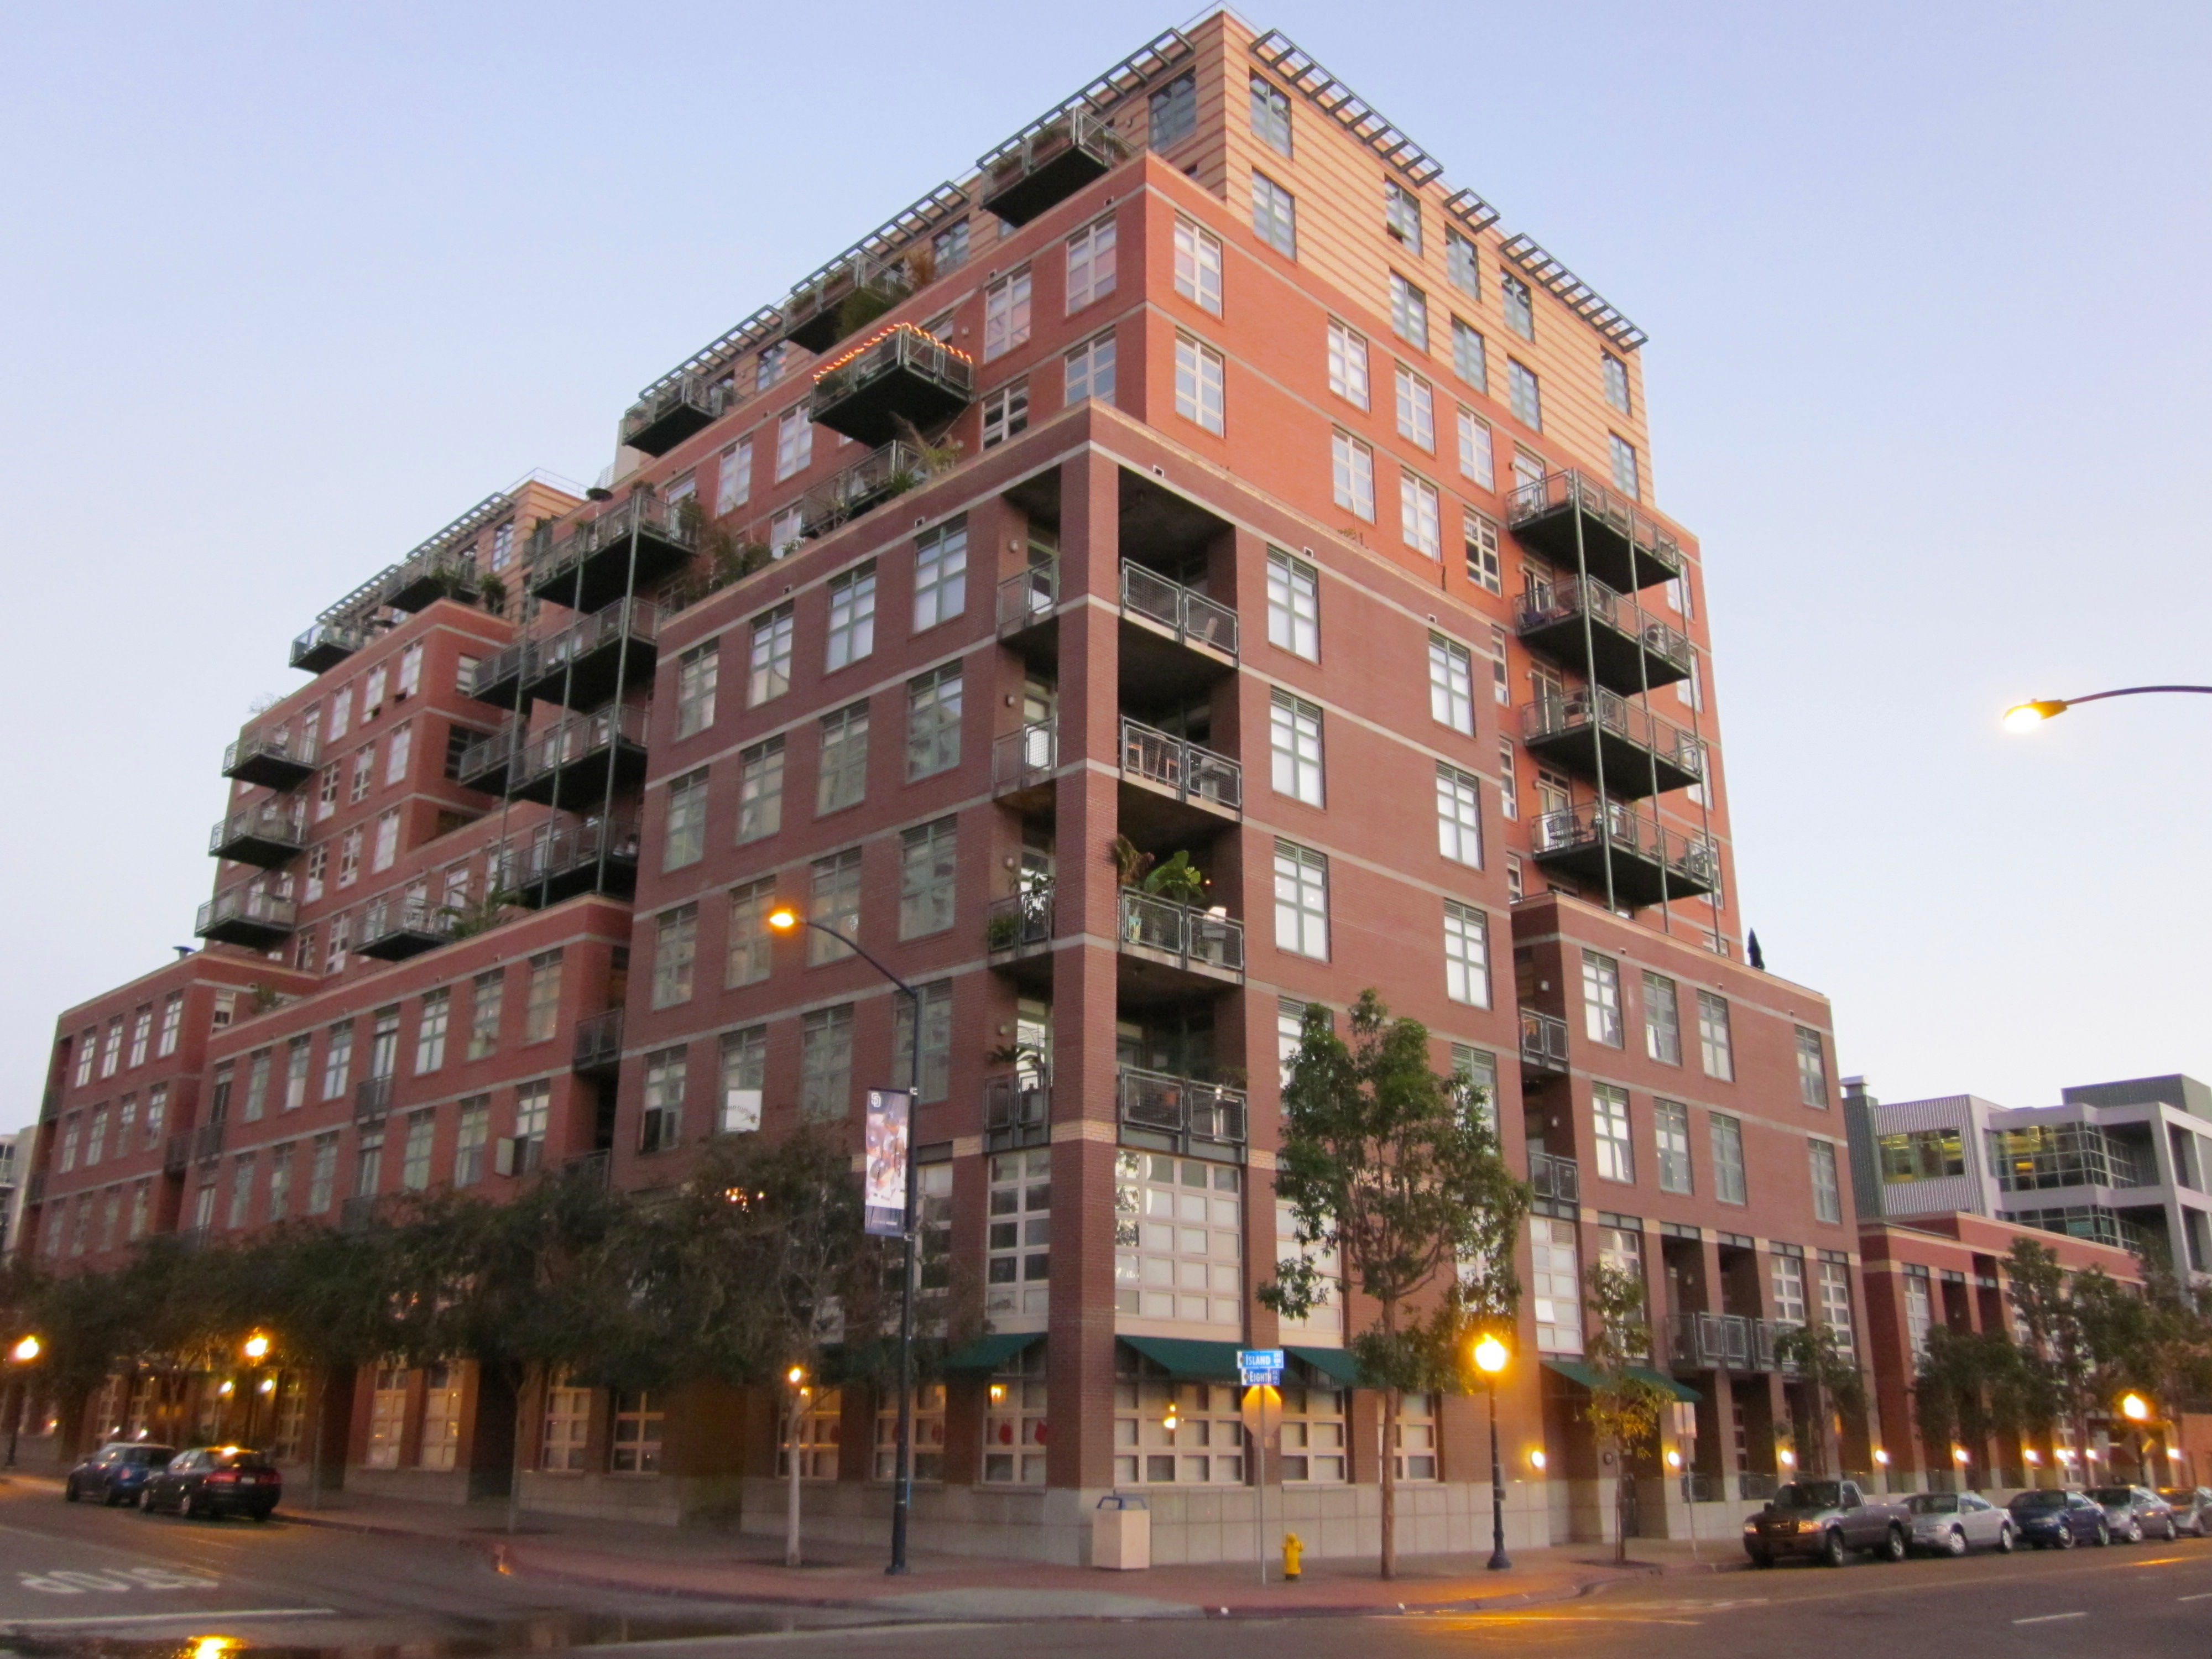 Downtown san diego lofts welcome to san diego - Apartment buildings san diego ...